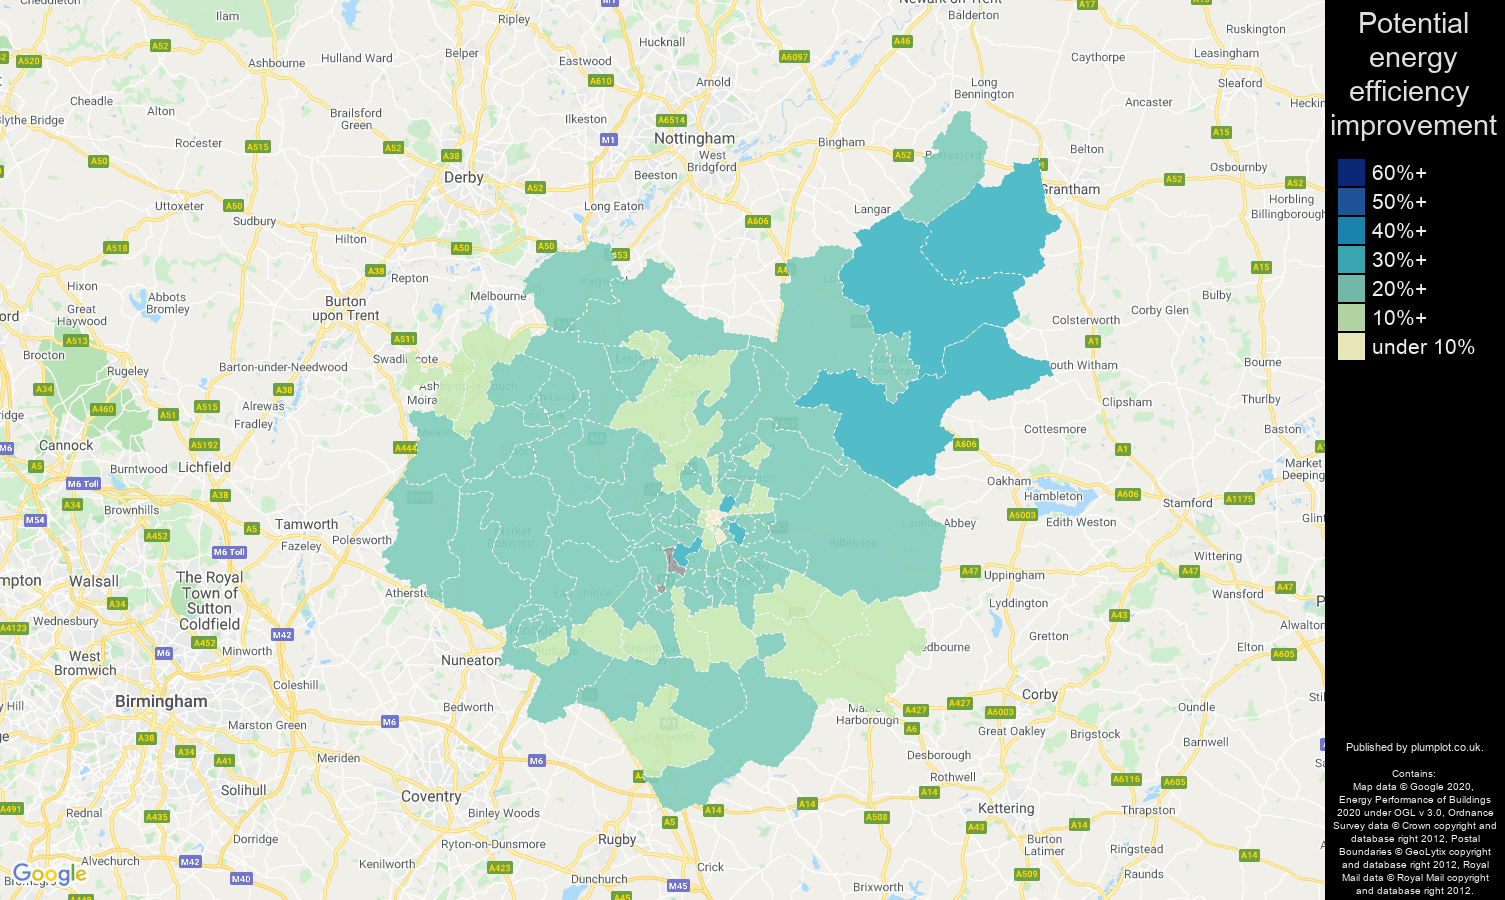 Leicestershire map of potential energy efficiency improvement of properties